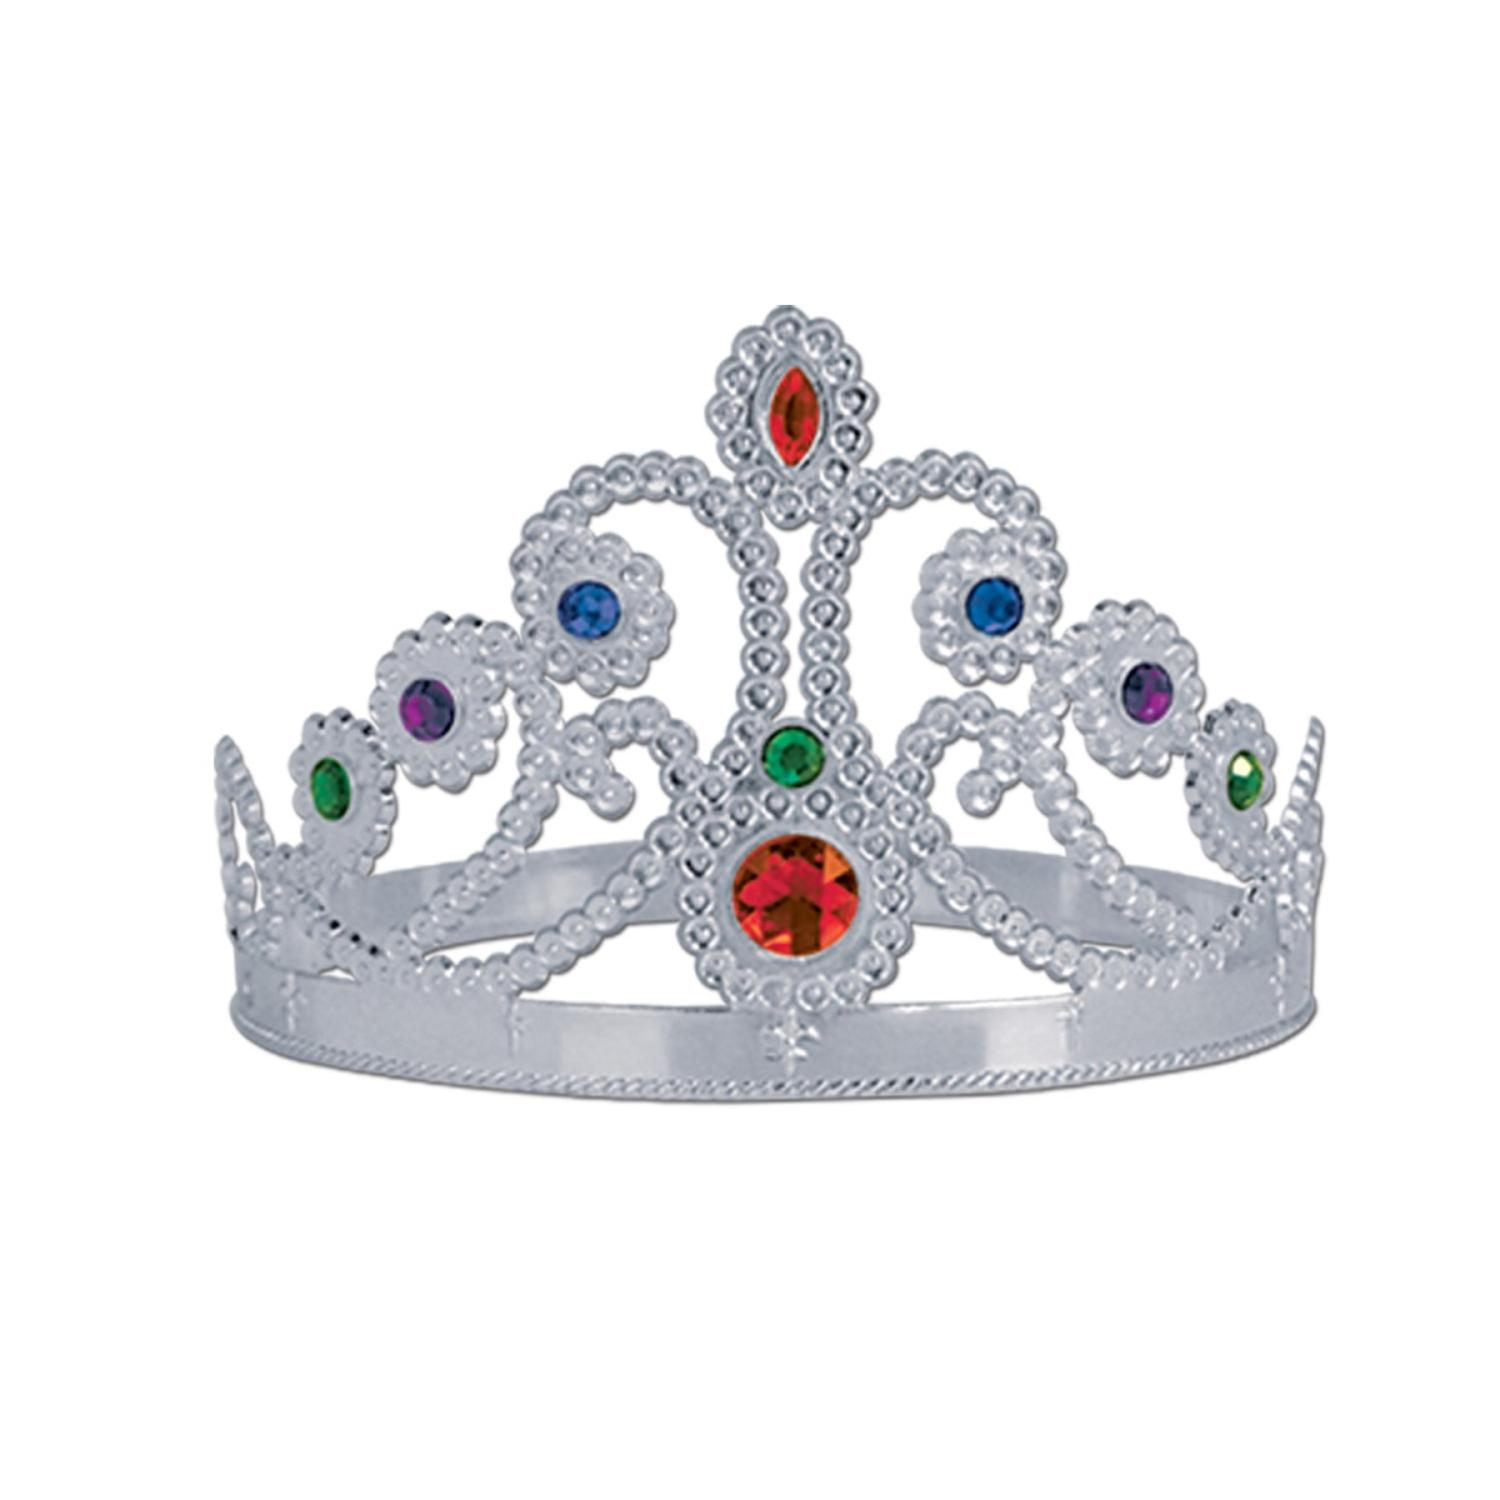 Club Pack of 12 Plastic Jeweled Silver Queen's Tiara Adjustable Party Hat